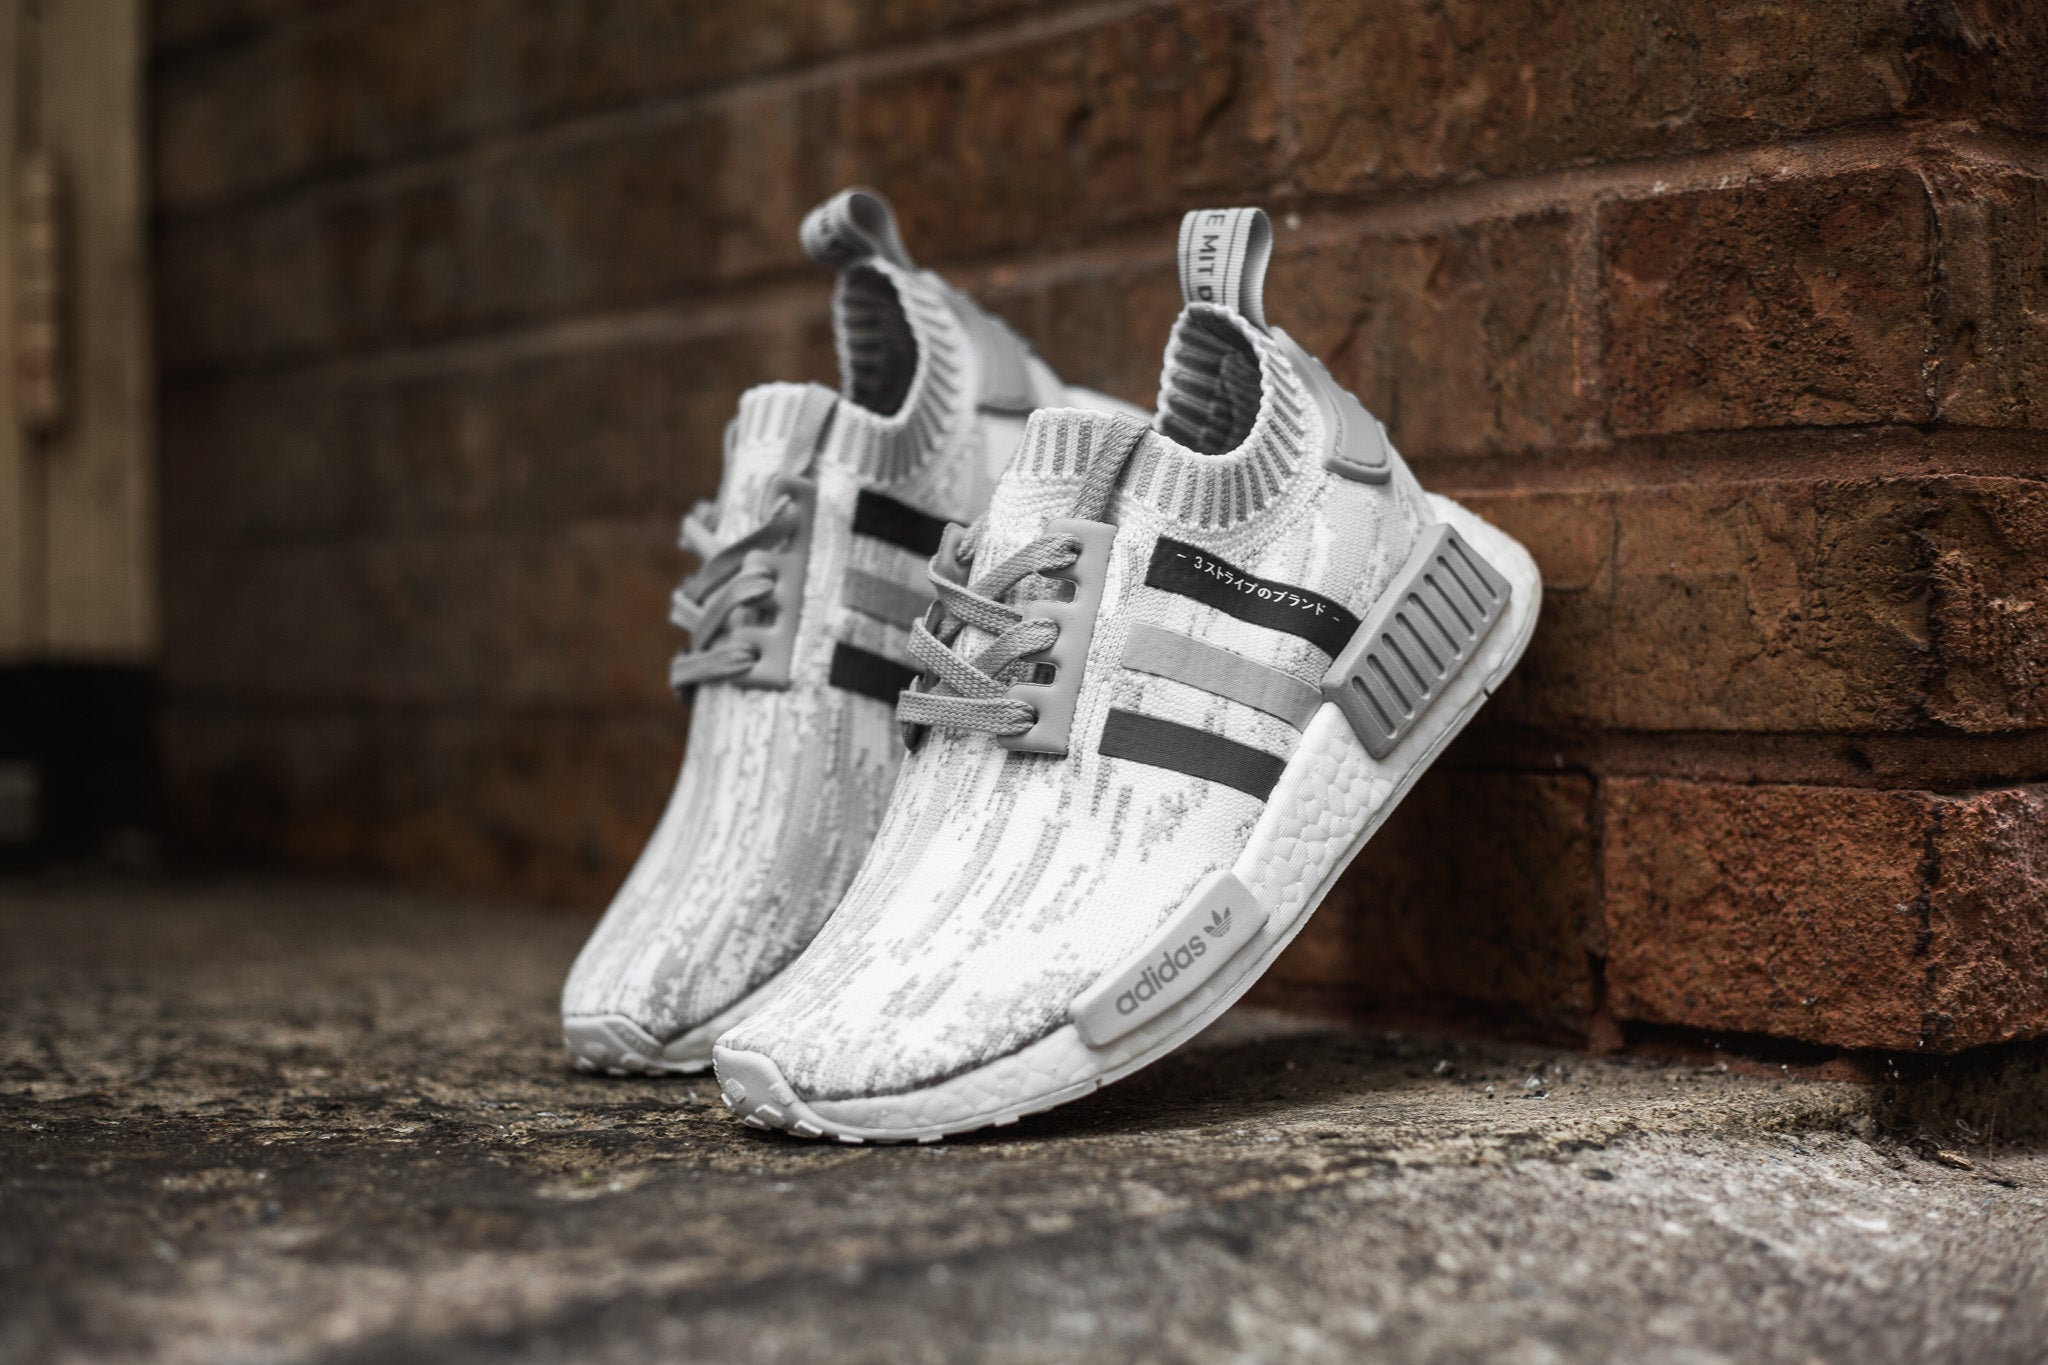 The adidas W NMD R1 PK features the glitch digicamo this season with tonal  grey accents decorating the top. The upper construction is made with adidas  ...